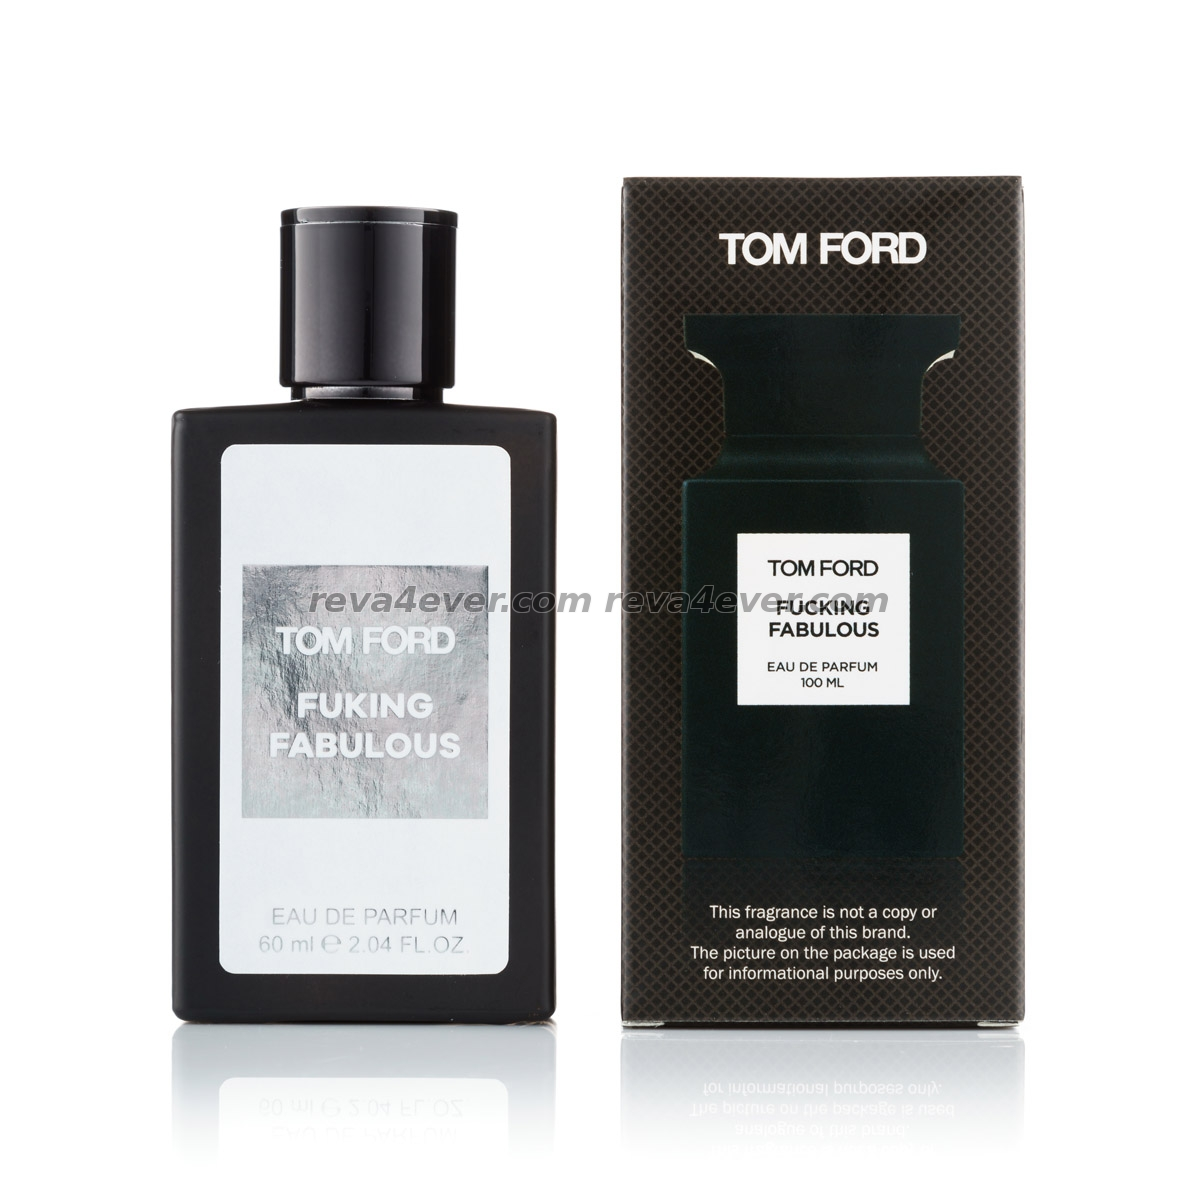 Tom Ford Fucking Fabulous edp 60 ml tester color box